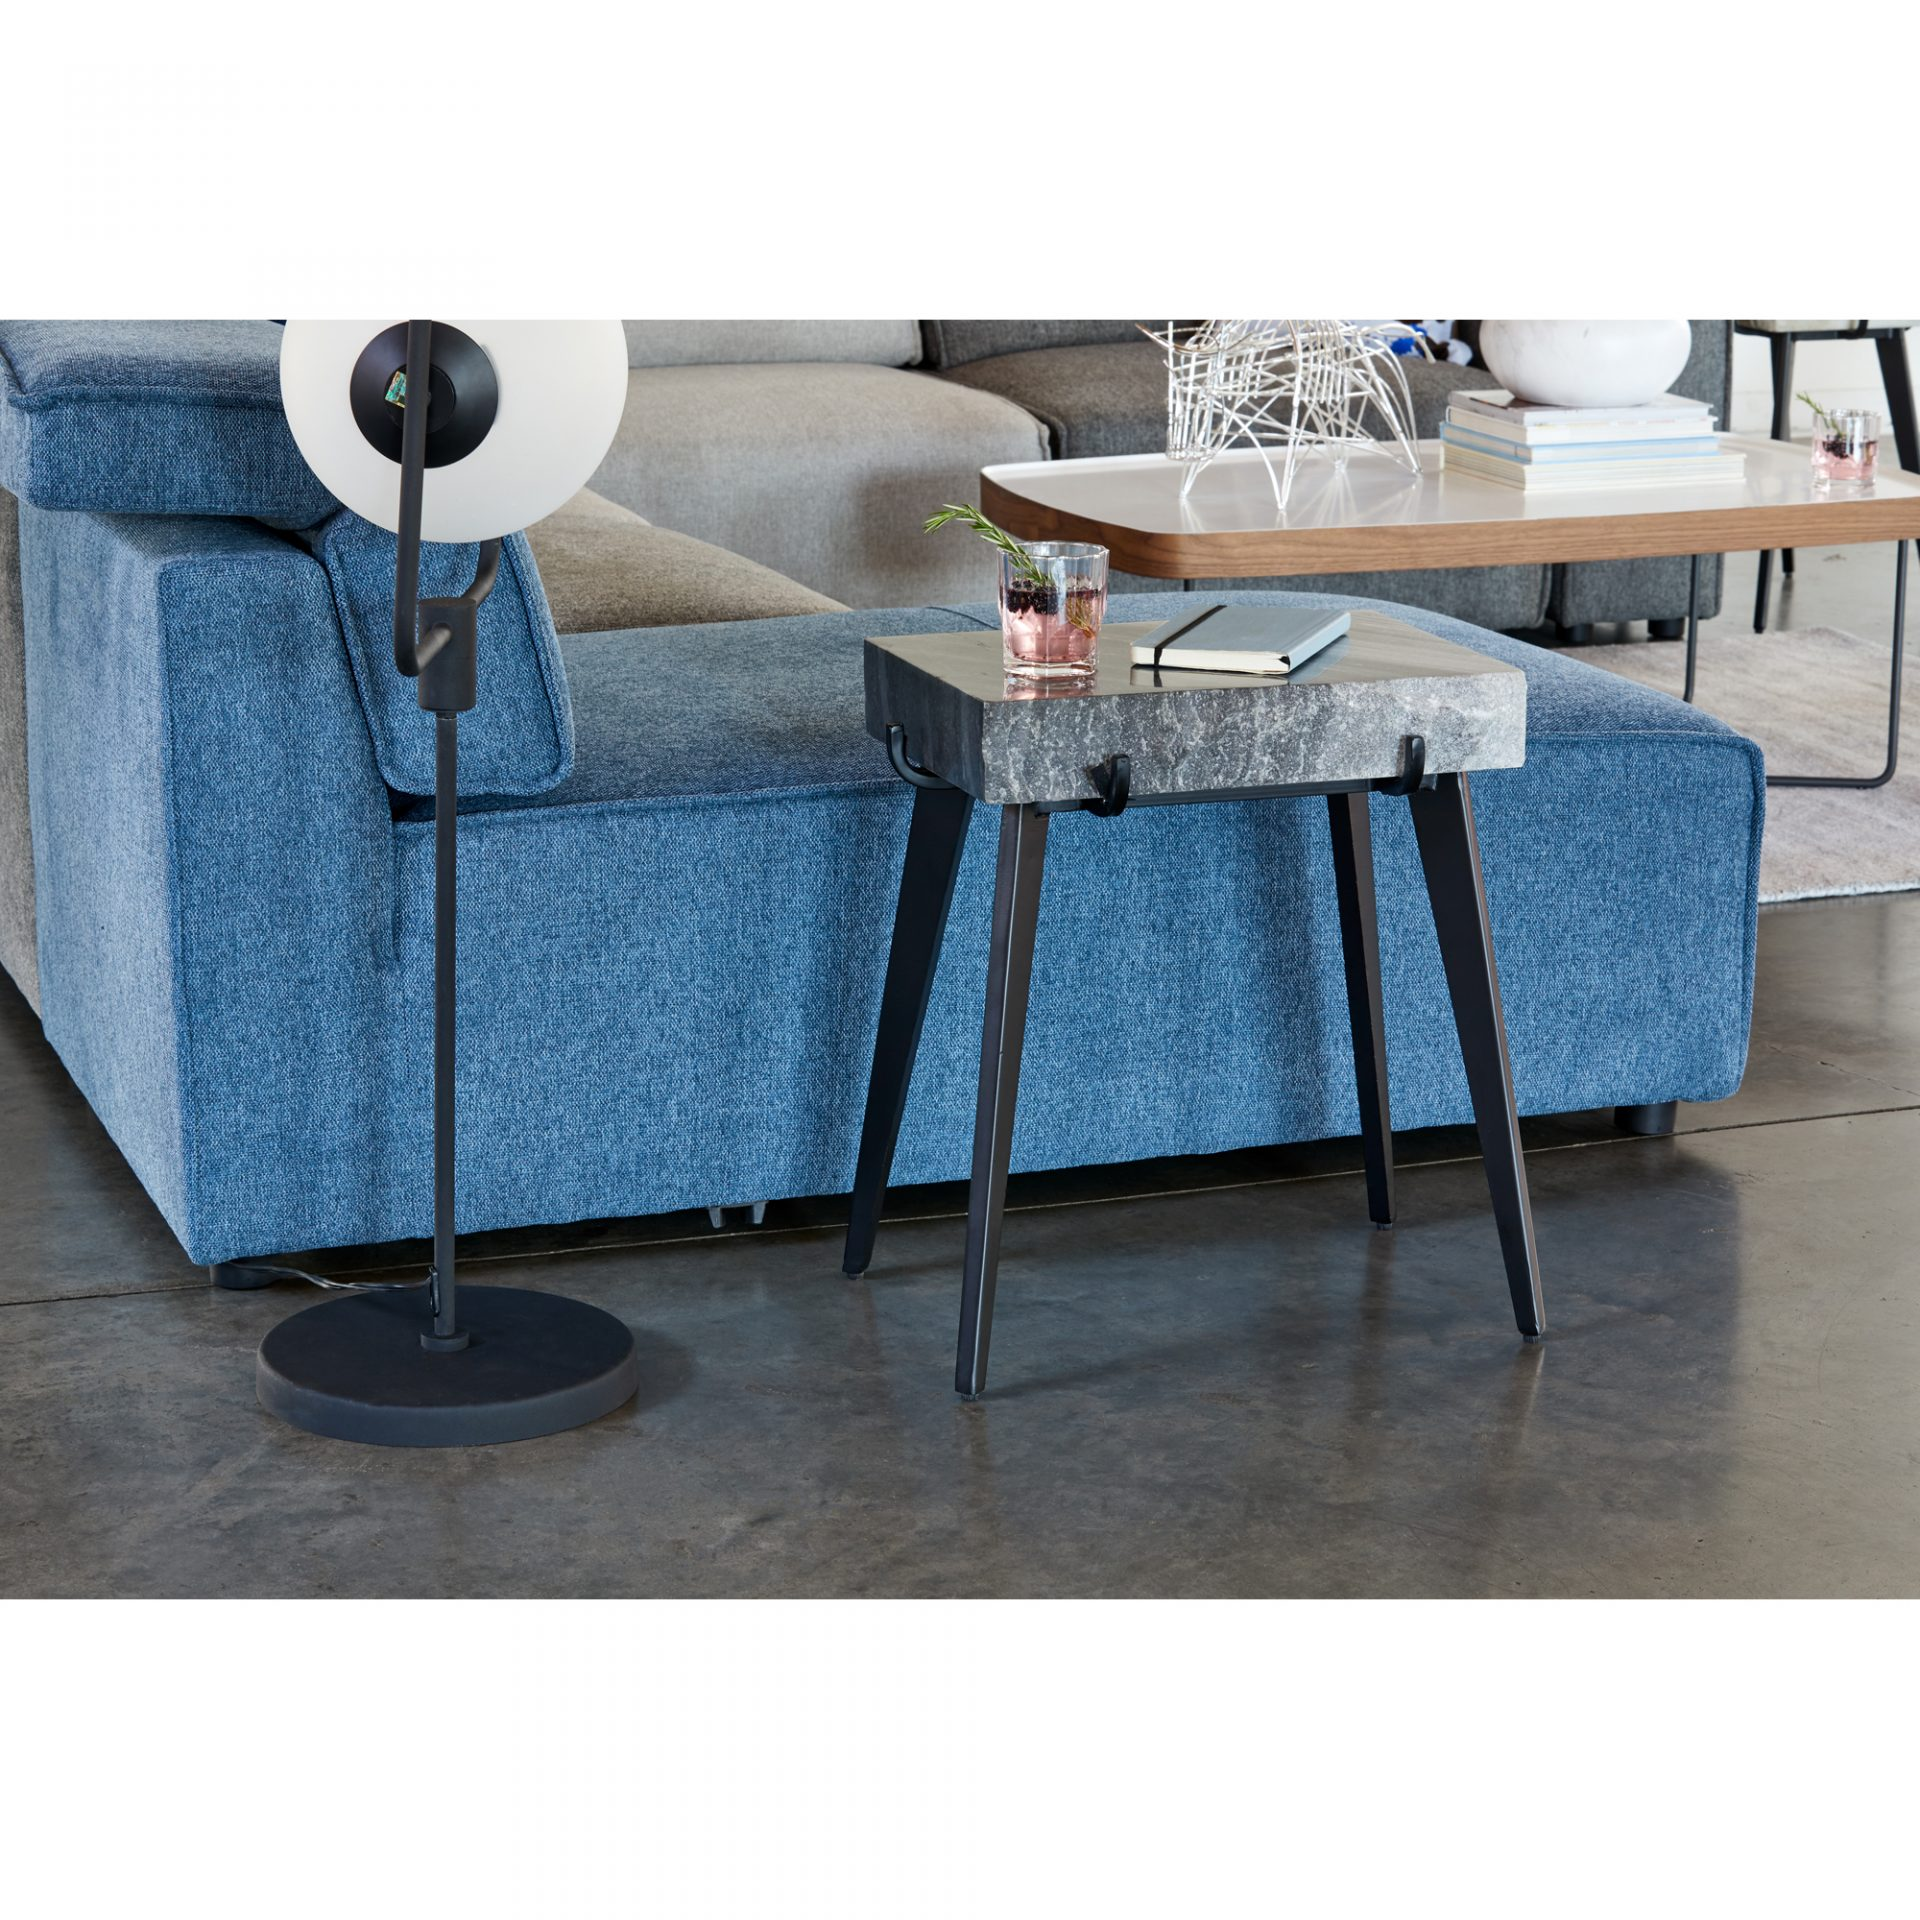 lauren accent table light grey products moe whole blue tables side units for living room outdoor home garden dark bedside thin console chest terrace furniture ashley armoire